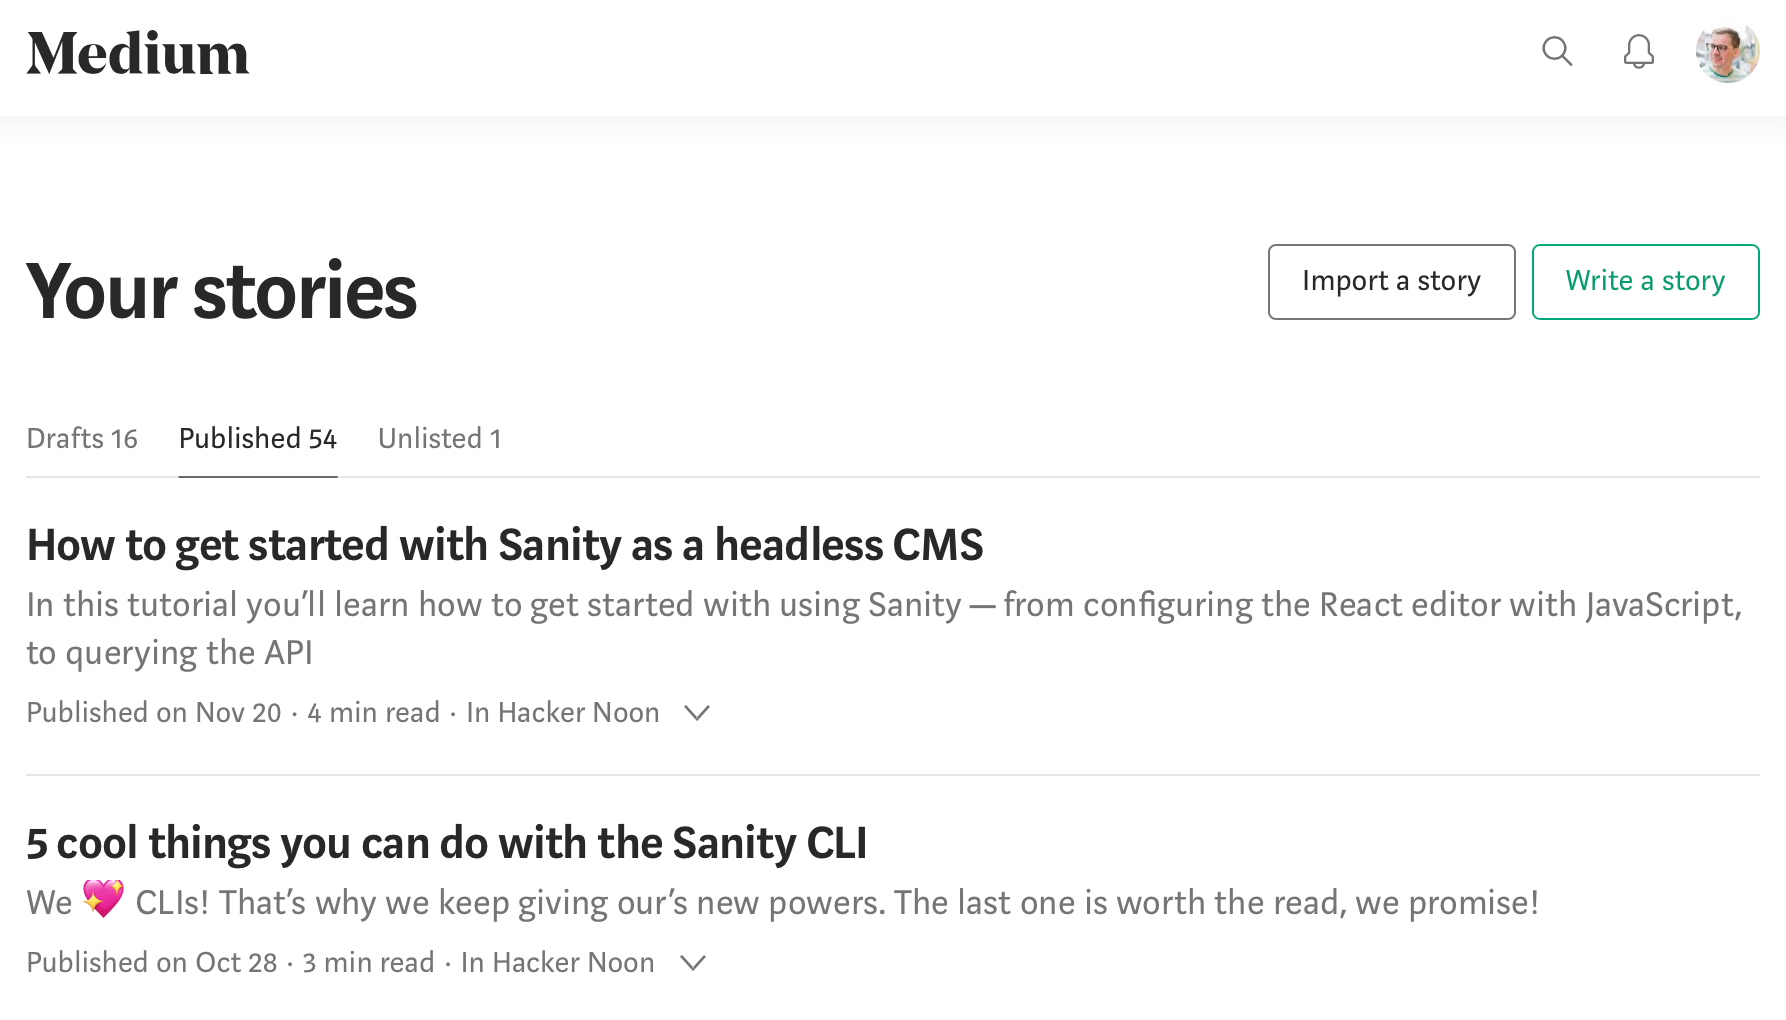 The import story button on Medium